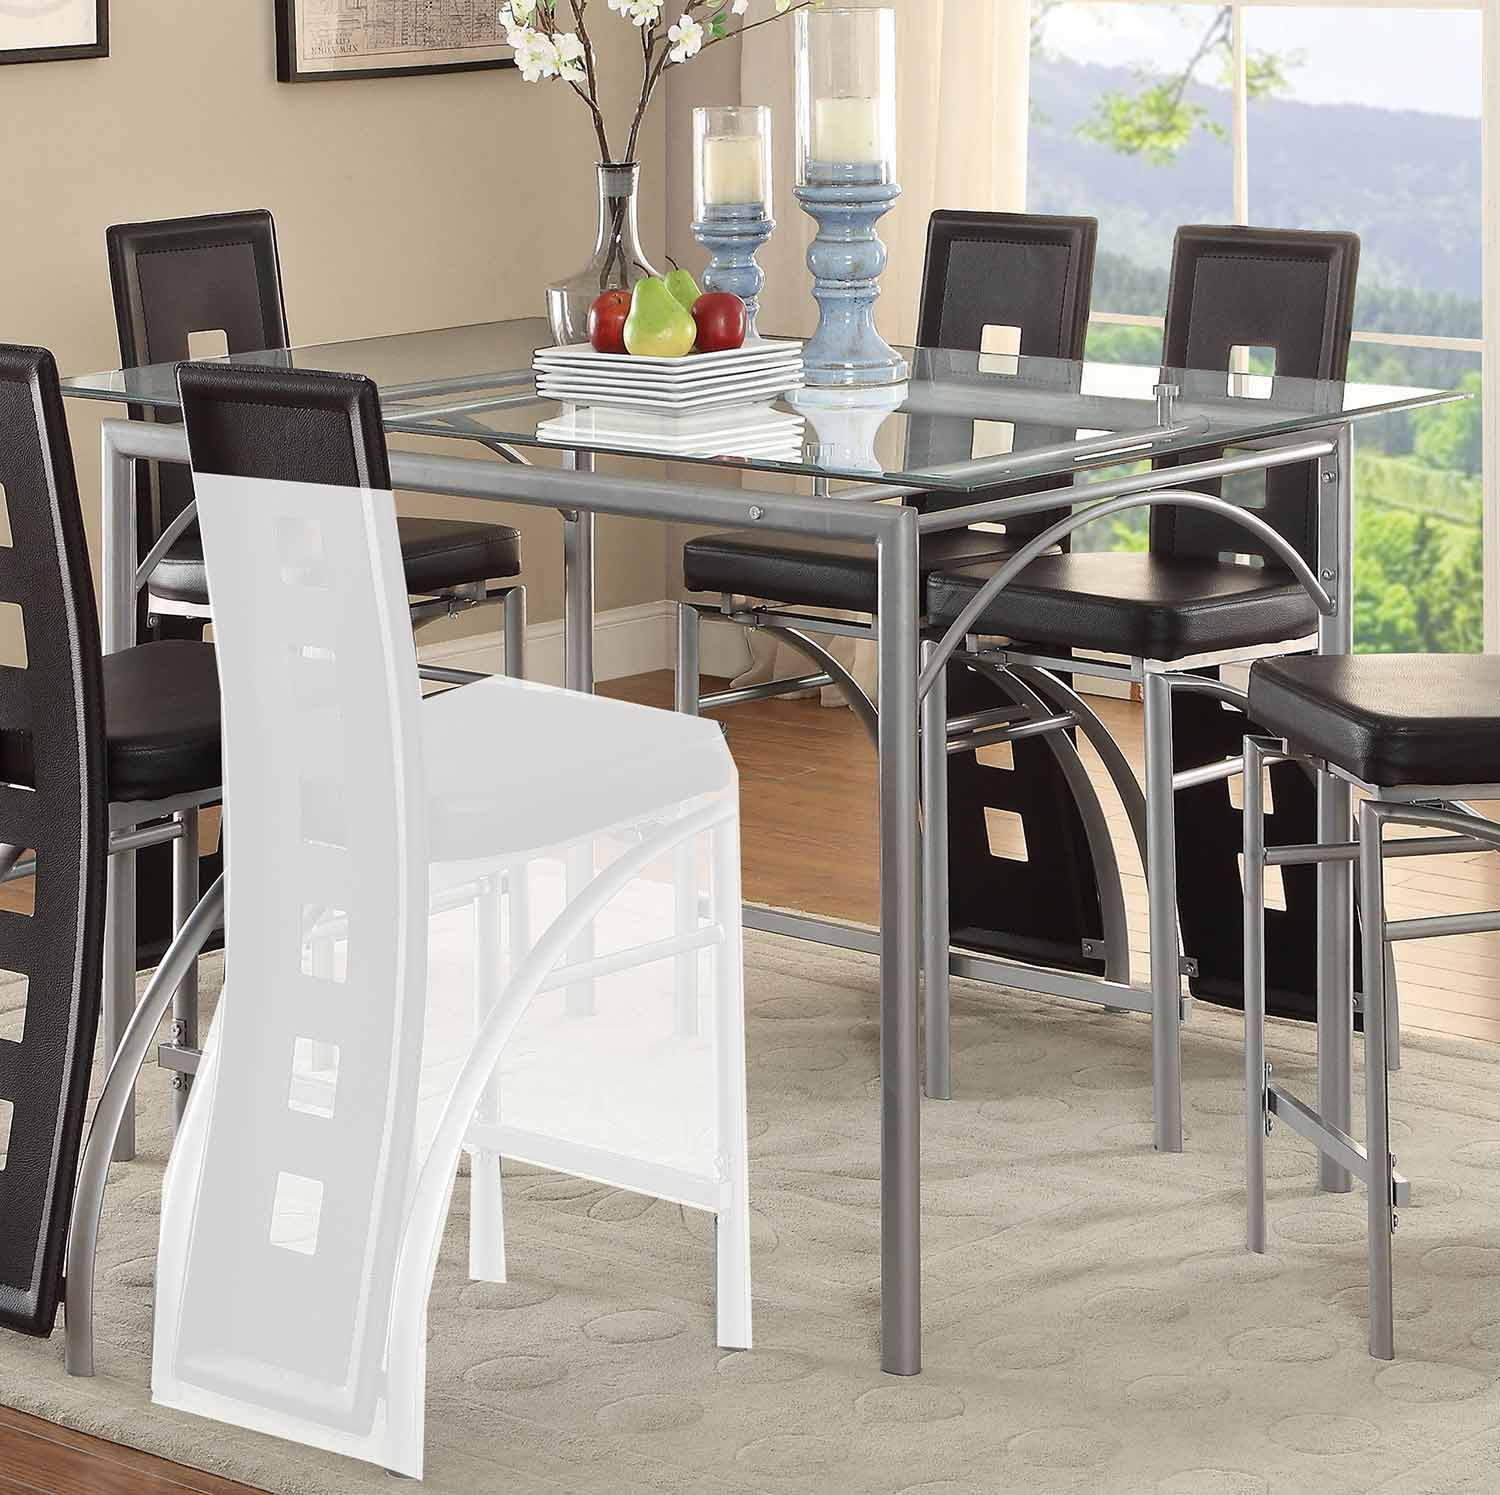 Coaster Lexton 101561 Rectangular Dining Table With 18: Coaster Los Feliz Rectangular Glass Counter Height Dining